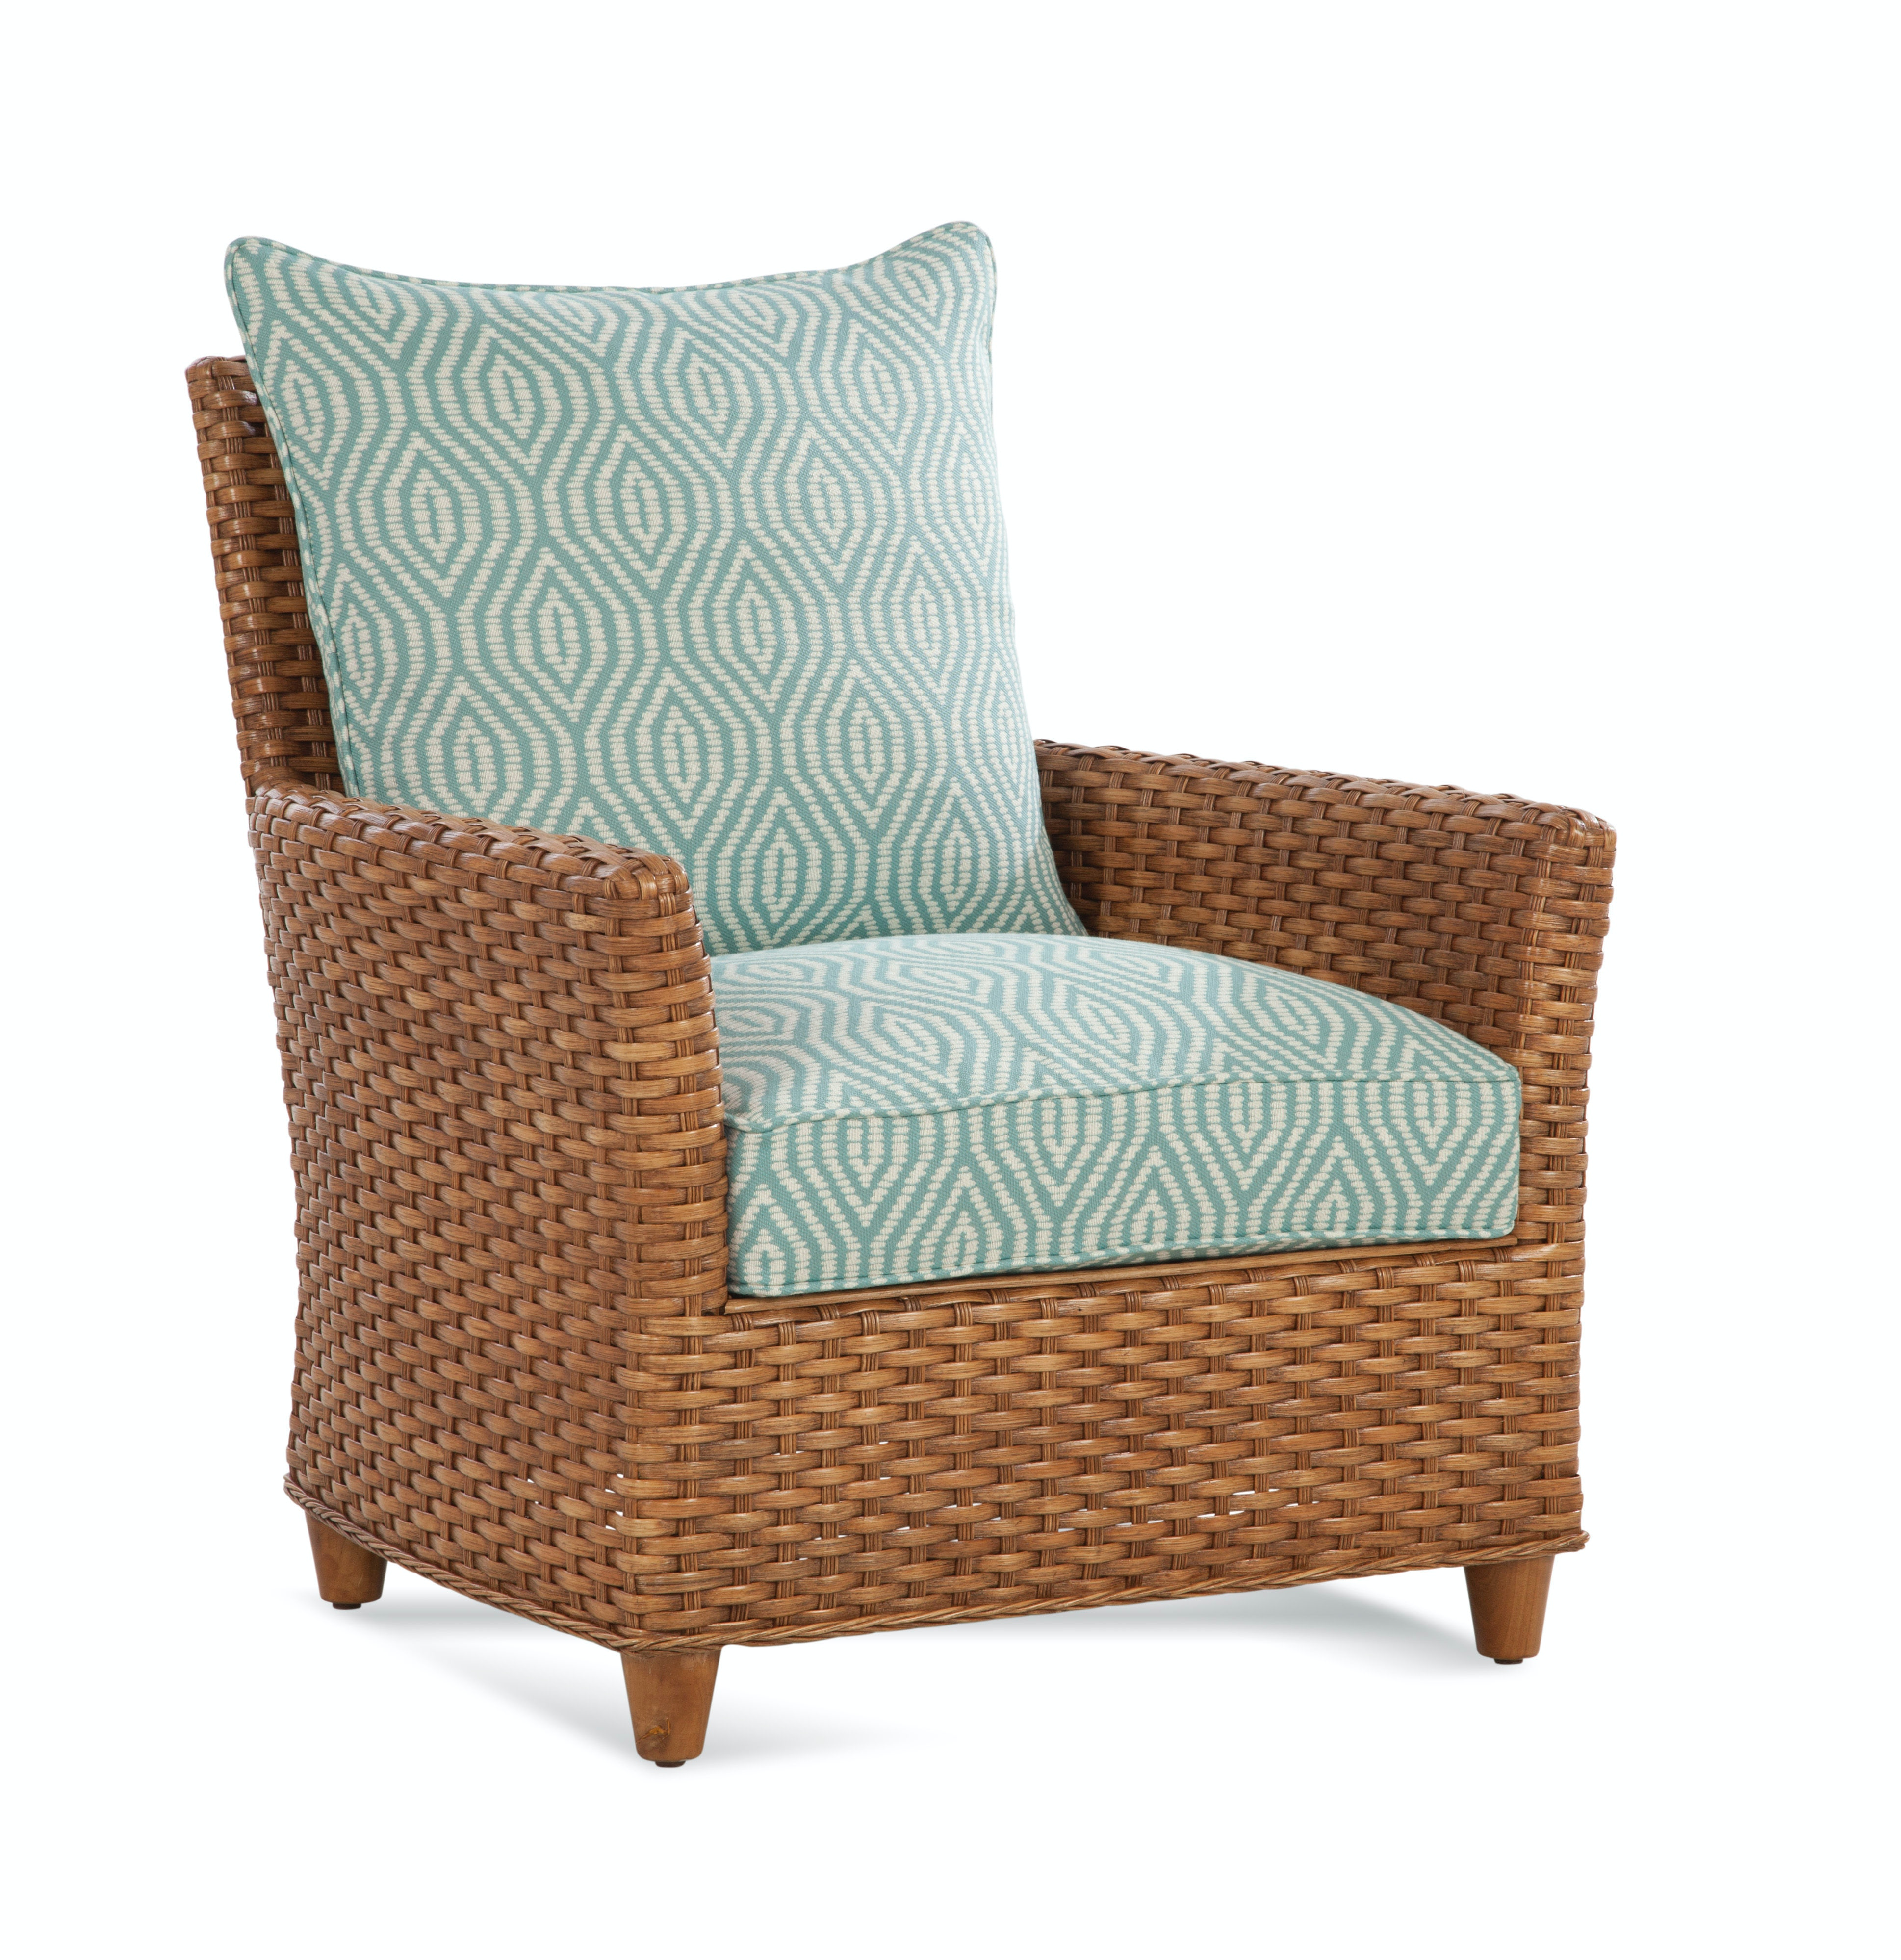 where to buy wicker chairs swing chair pune and rattan furniture braxton culler sophia nc 1914 001 lanai breeze